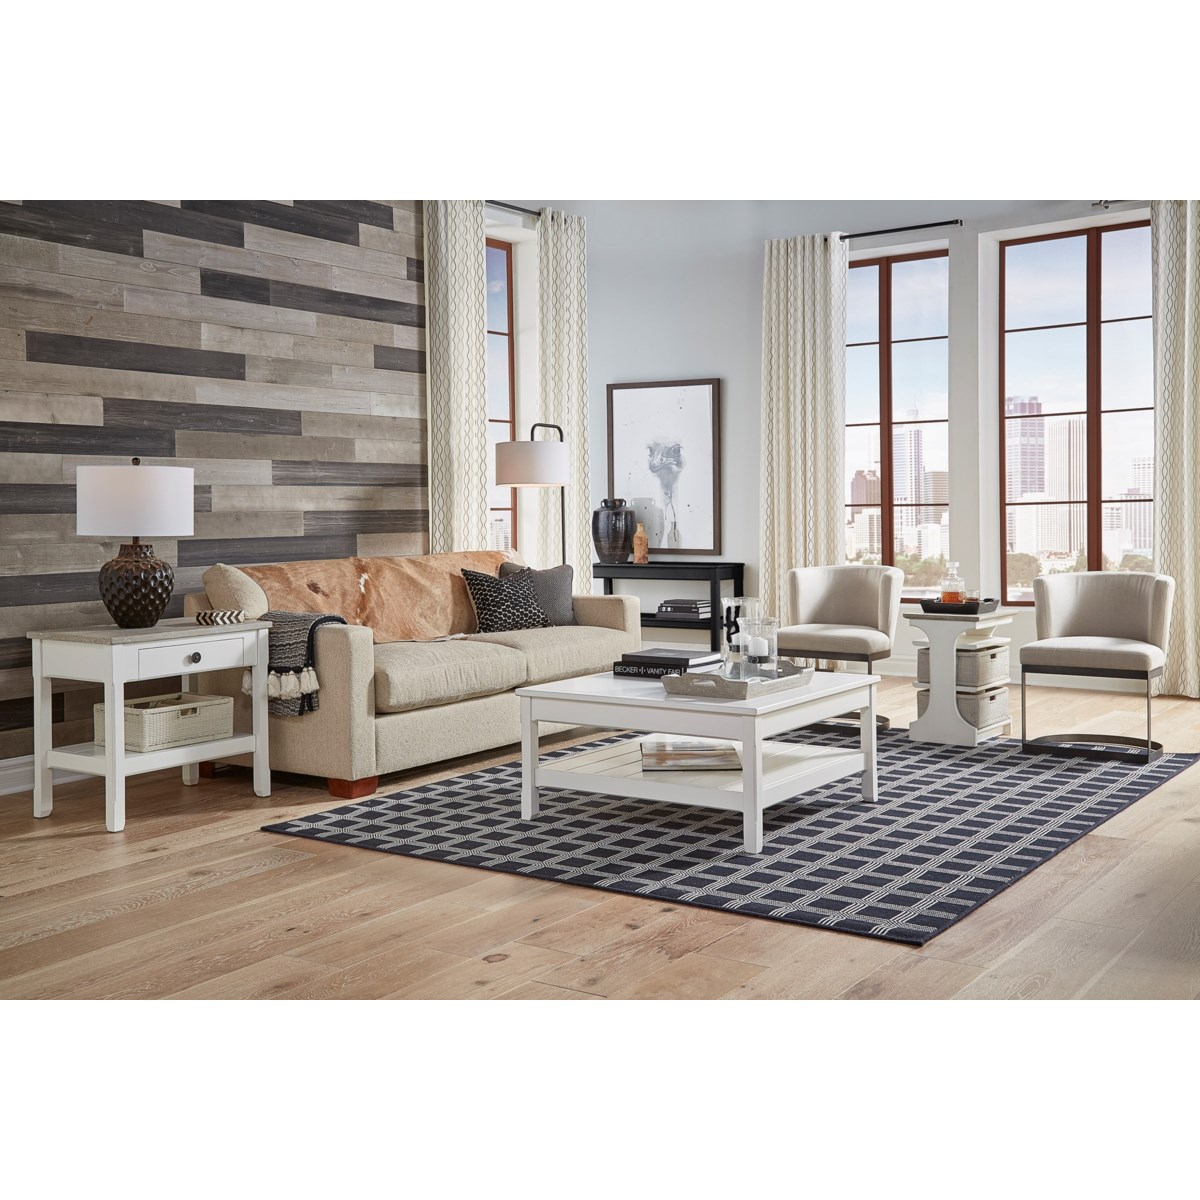 KENNEDY CHAIRSIDE TABLE - WH/RW+